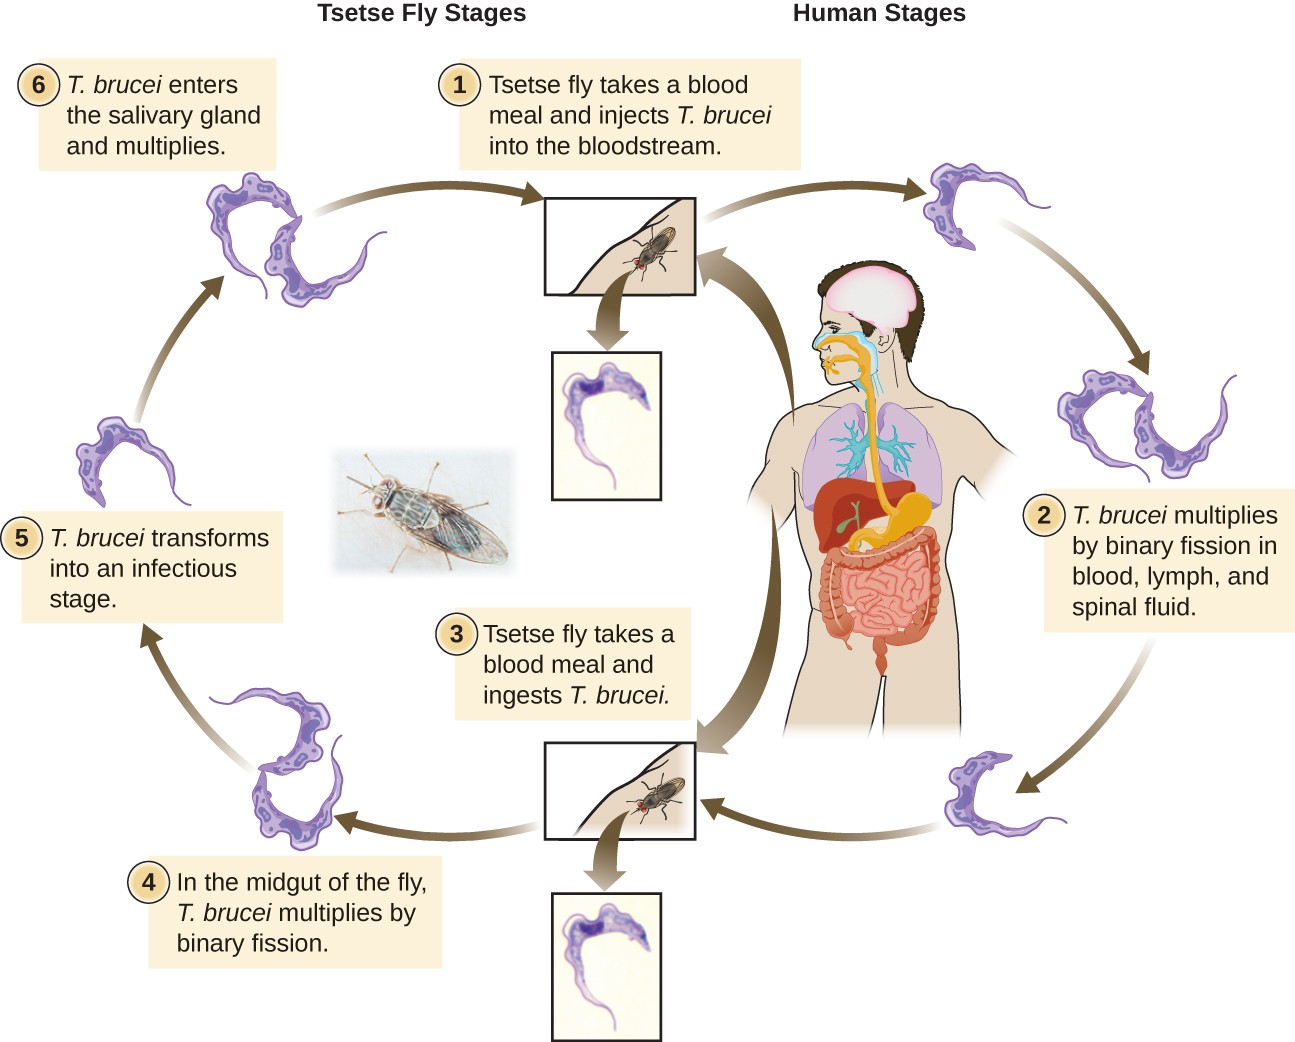 The life cycle of Trypanosoma brucei takes place in both tsetse fly and humans. When the tsetse fly takes a blood meal it inject T. brucei into the bloodstream of a human. There the T. brucei multiplies by binary fission in blood, lymph, and spinal fluid. When another tsetse fly takes a blood meal it ingests T. brucei which multiplies by binary fission in the midgut of the fly. The T. brucei then transforms into an infectious stage which enters the salivary glands and multiplies. This can then be spread to another human.